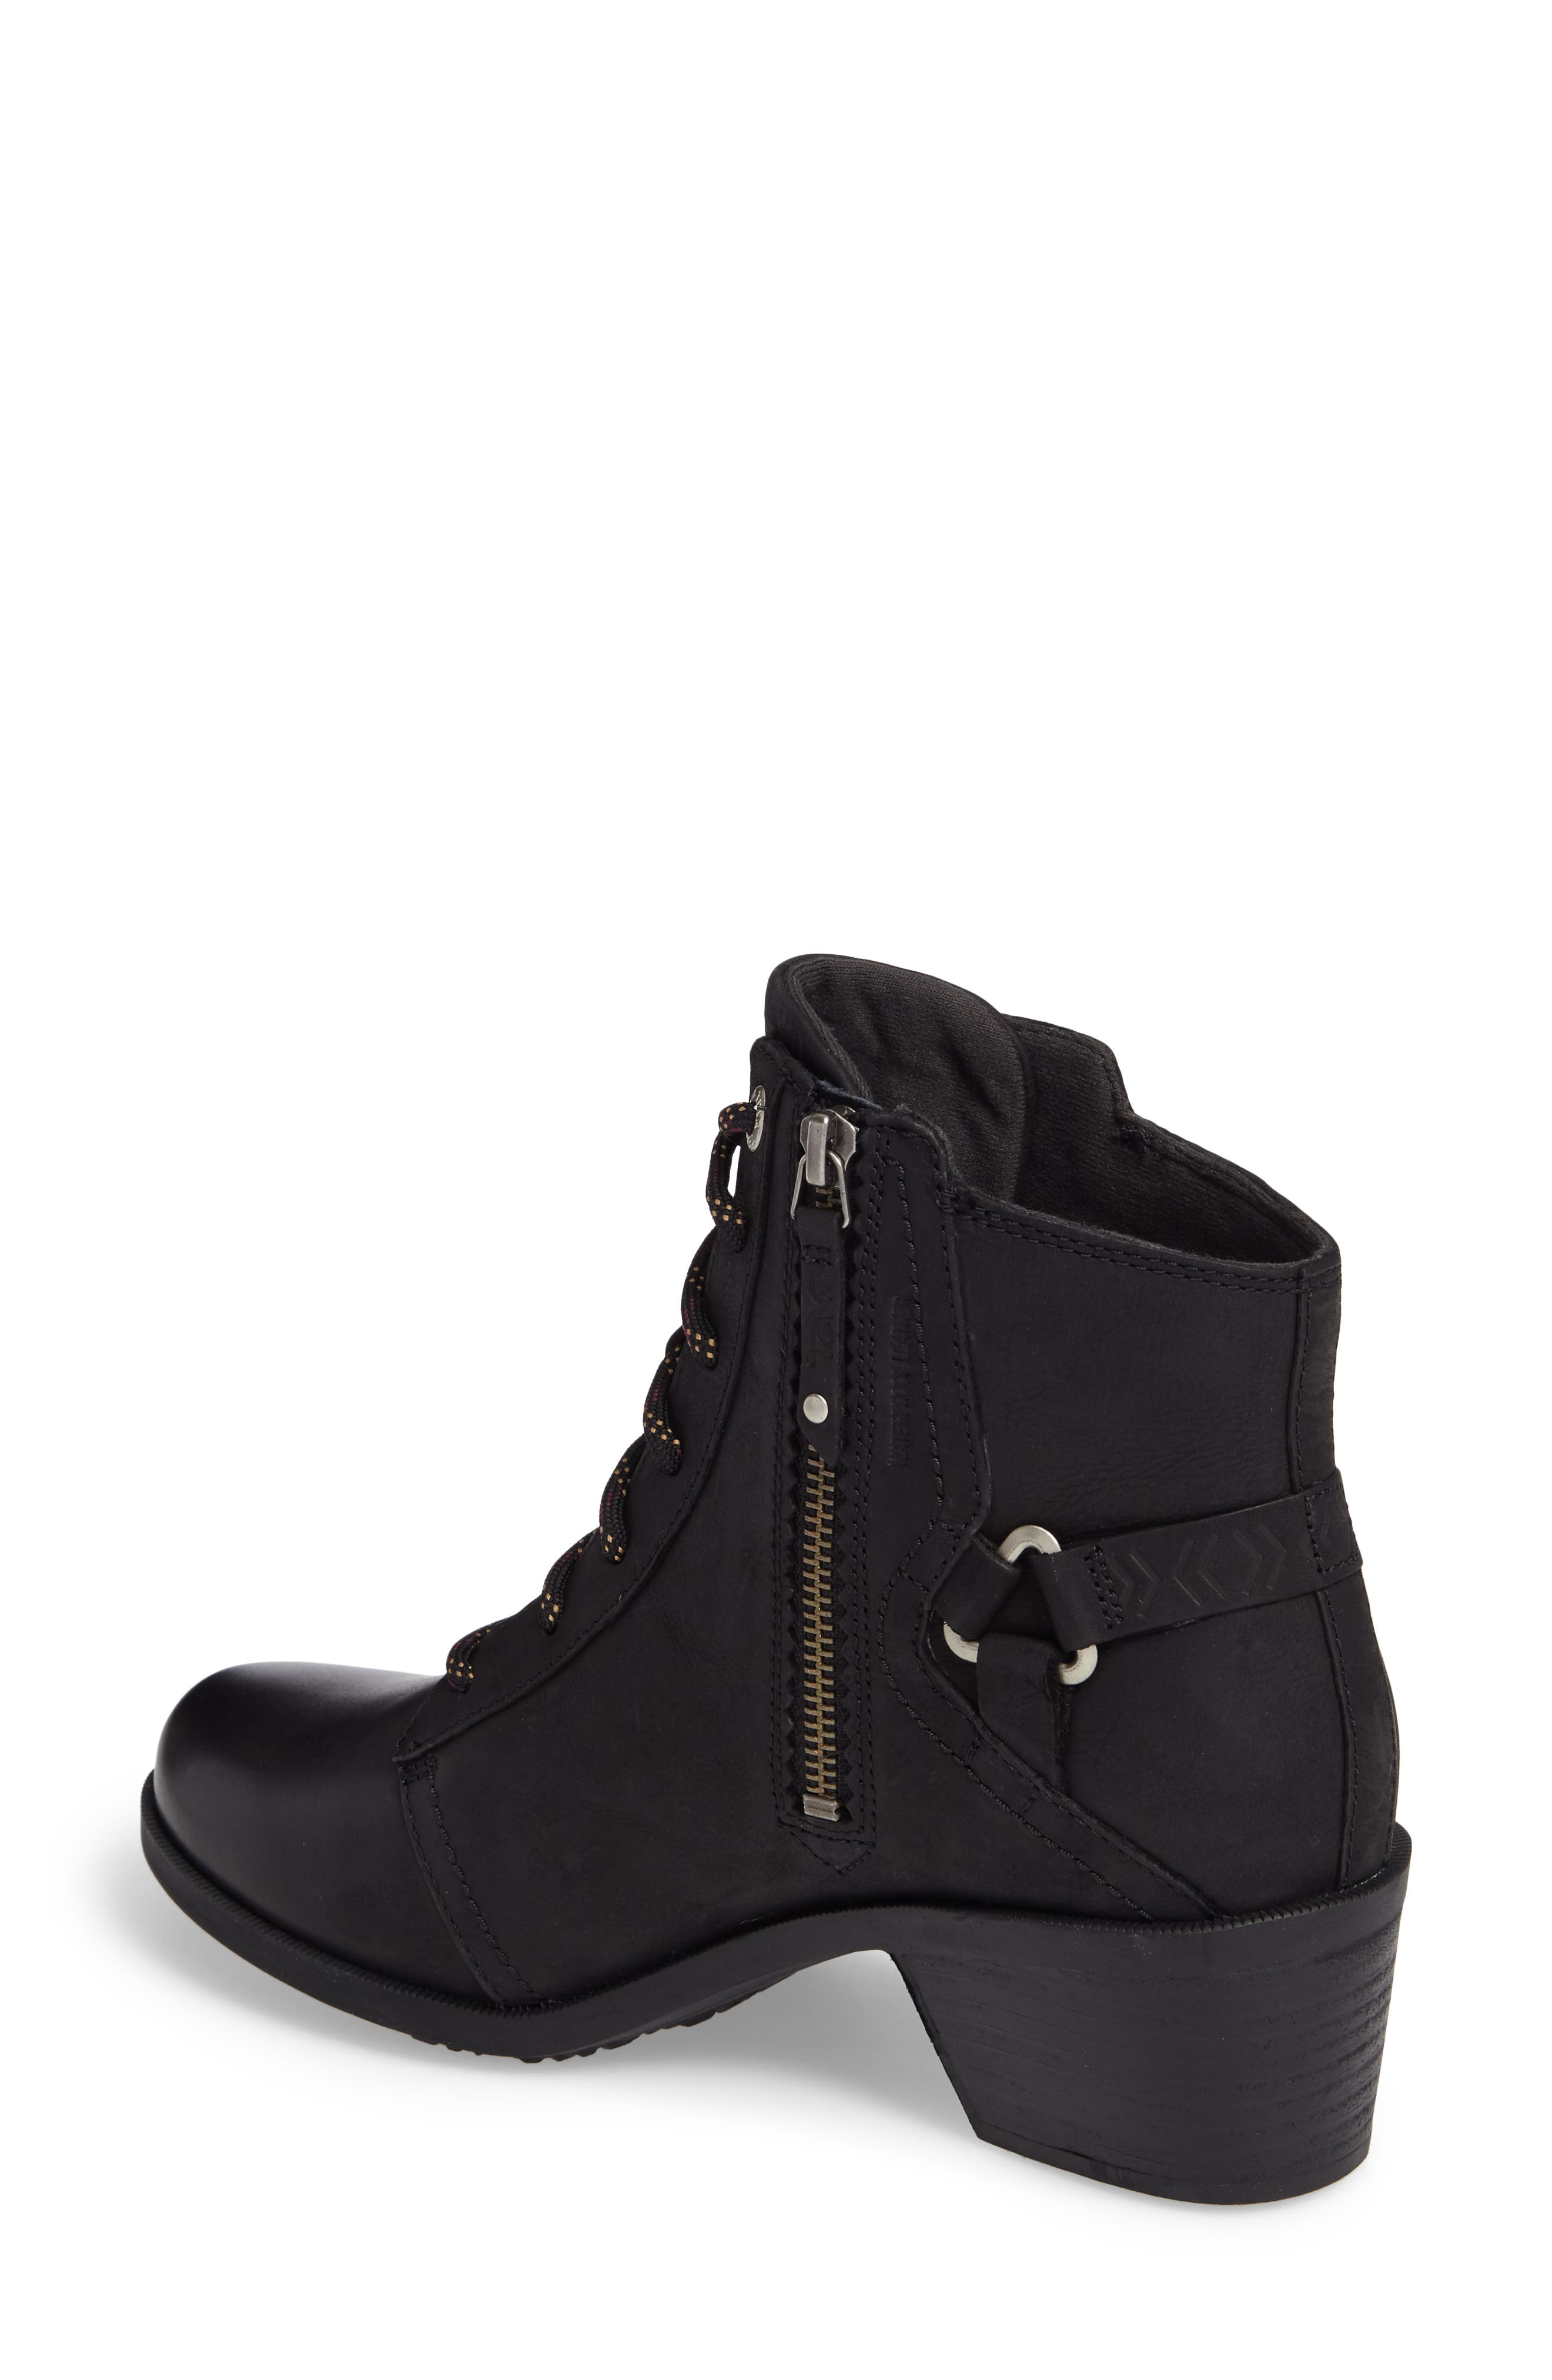 Foxy Lace-Up Waterproof Boot,                             Alternate thumbnail 2, color,                             BLACK LEATHER